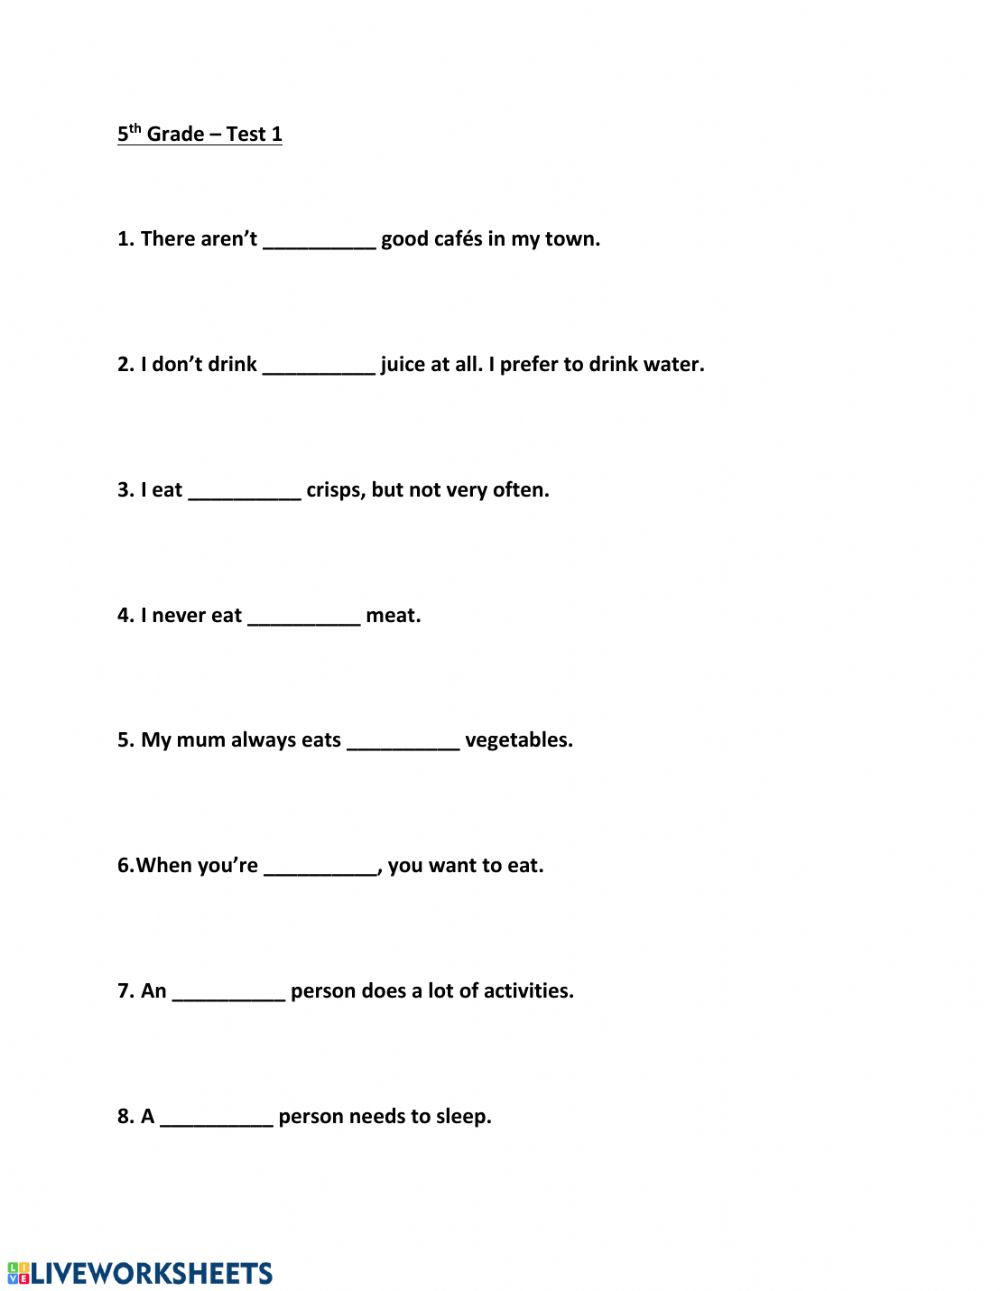 hight resolution of 5th Grade - Test 1 worksheet